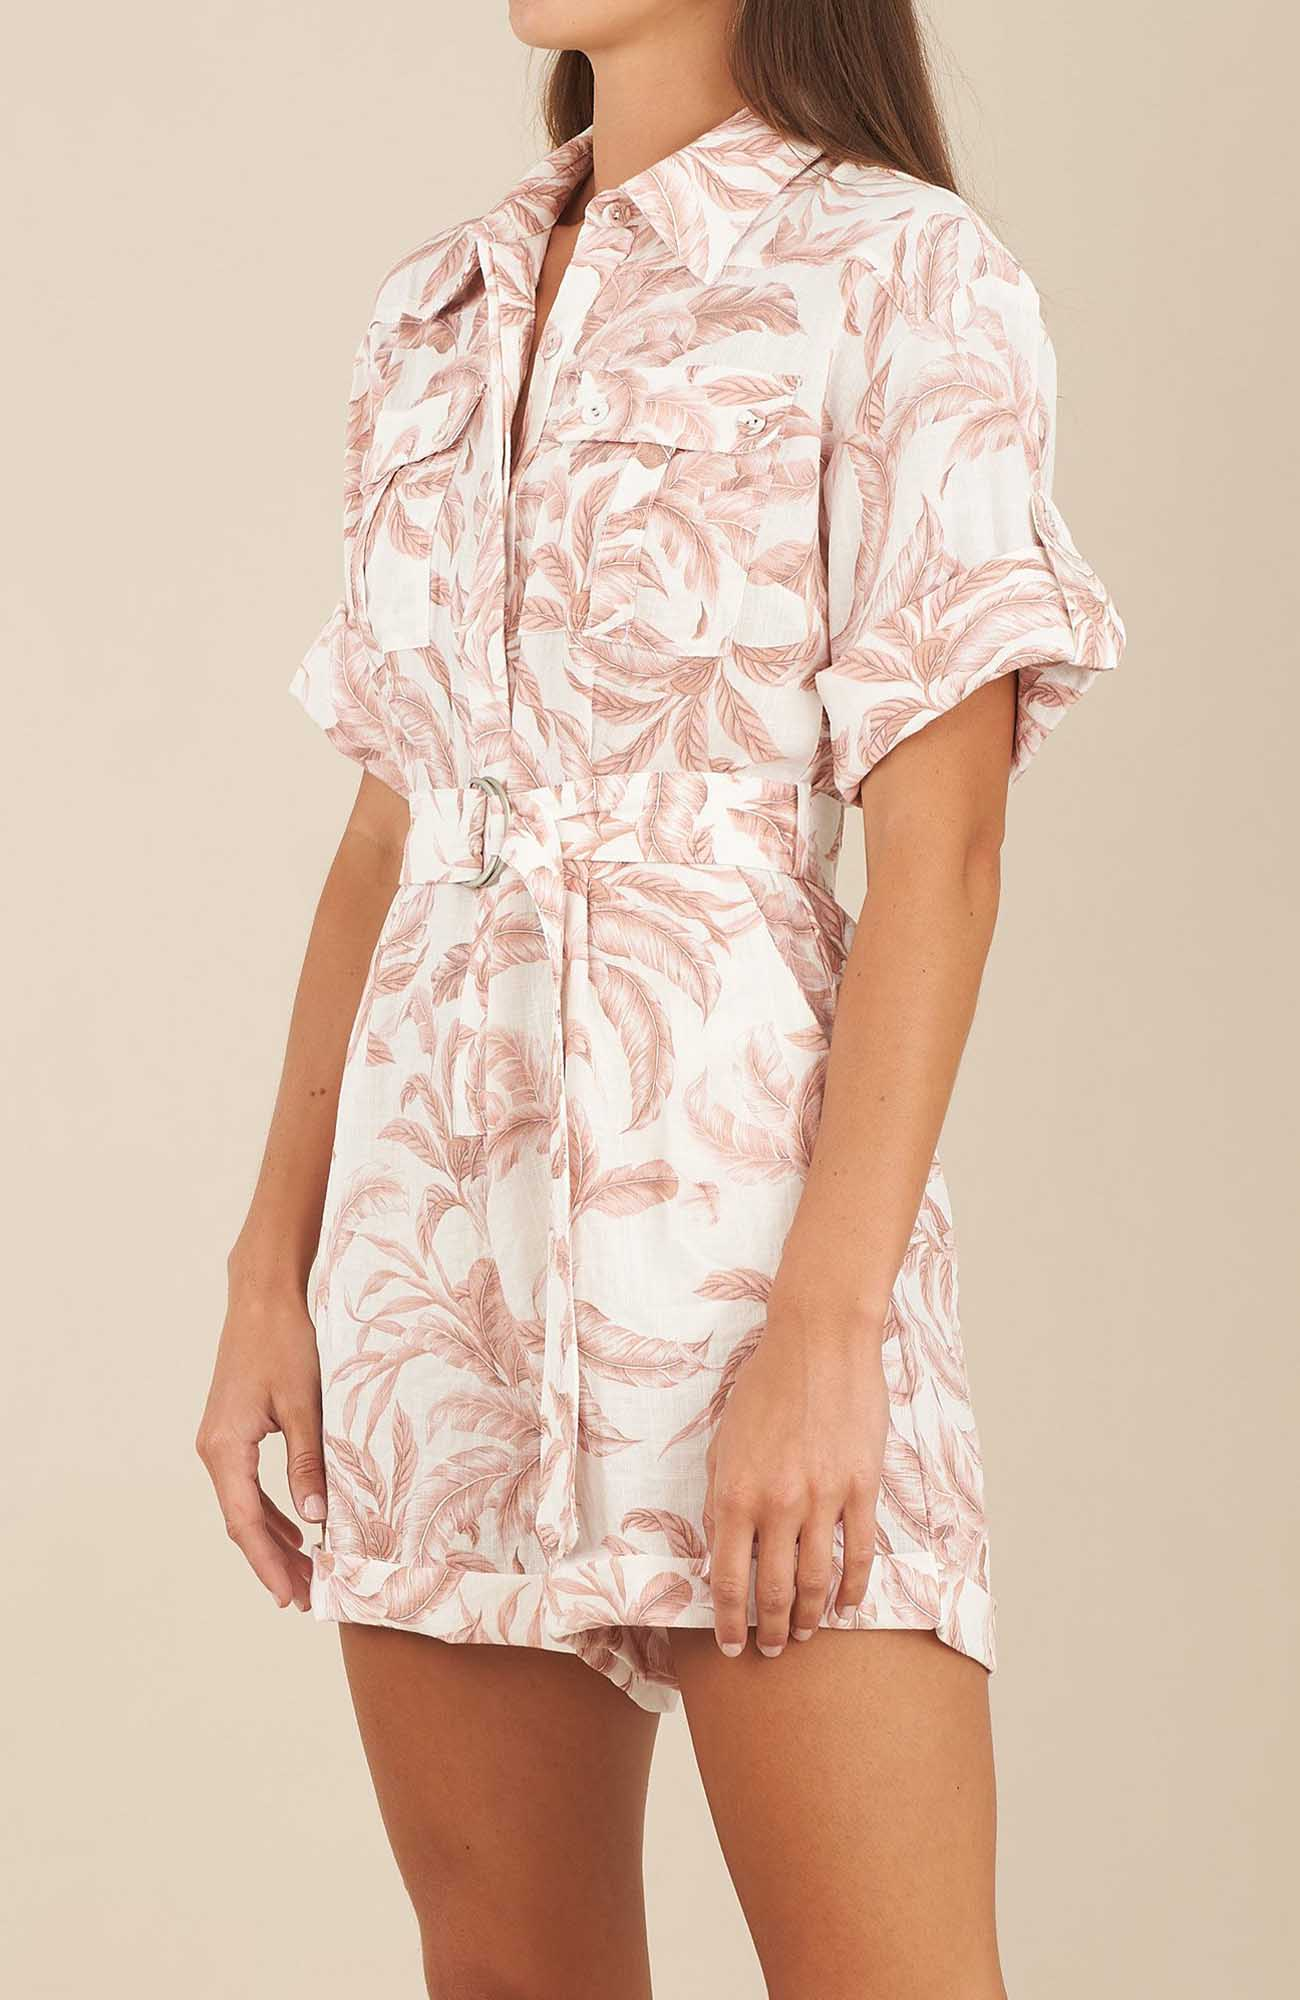 Saint Tropez Playsuit